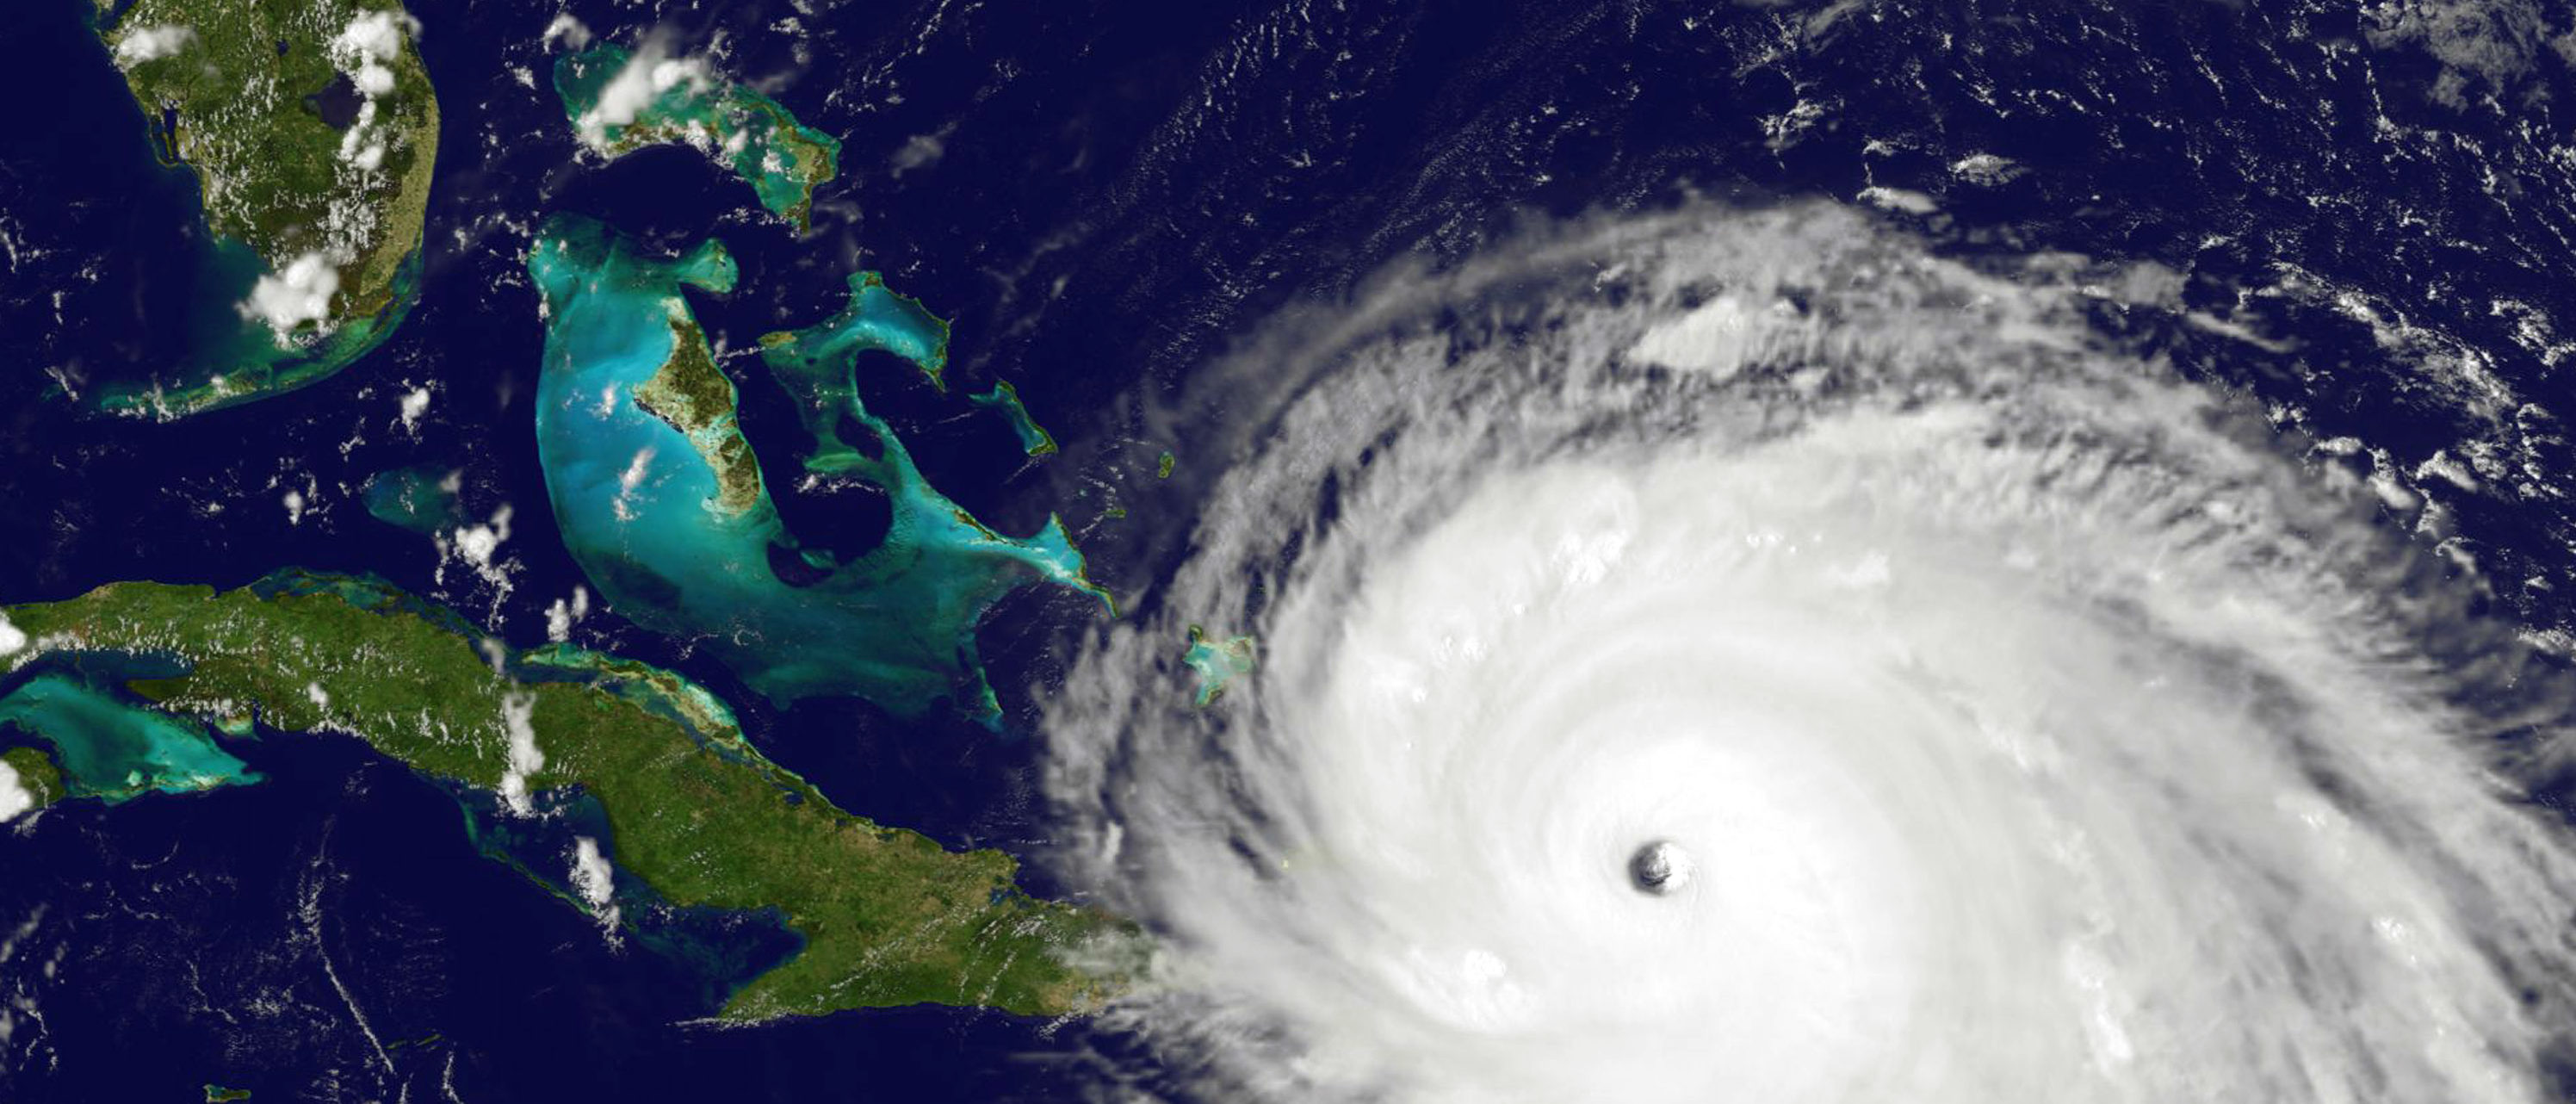 CARIBBEAN SEA - SEPTEMBER 7: In this NOAA handout image, NOAA's GOES satellite shows Hurricane Irma  as it moves towards the Florida Coast in the Caribbean Sea taken at 20:00 UTC on September 07, 2017. The state of Florida is in the track of where the hurricane may make landfall. (Photo by NOAA GOES Project via Getty Images)